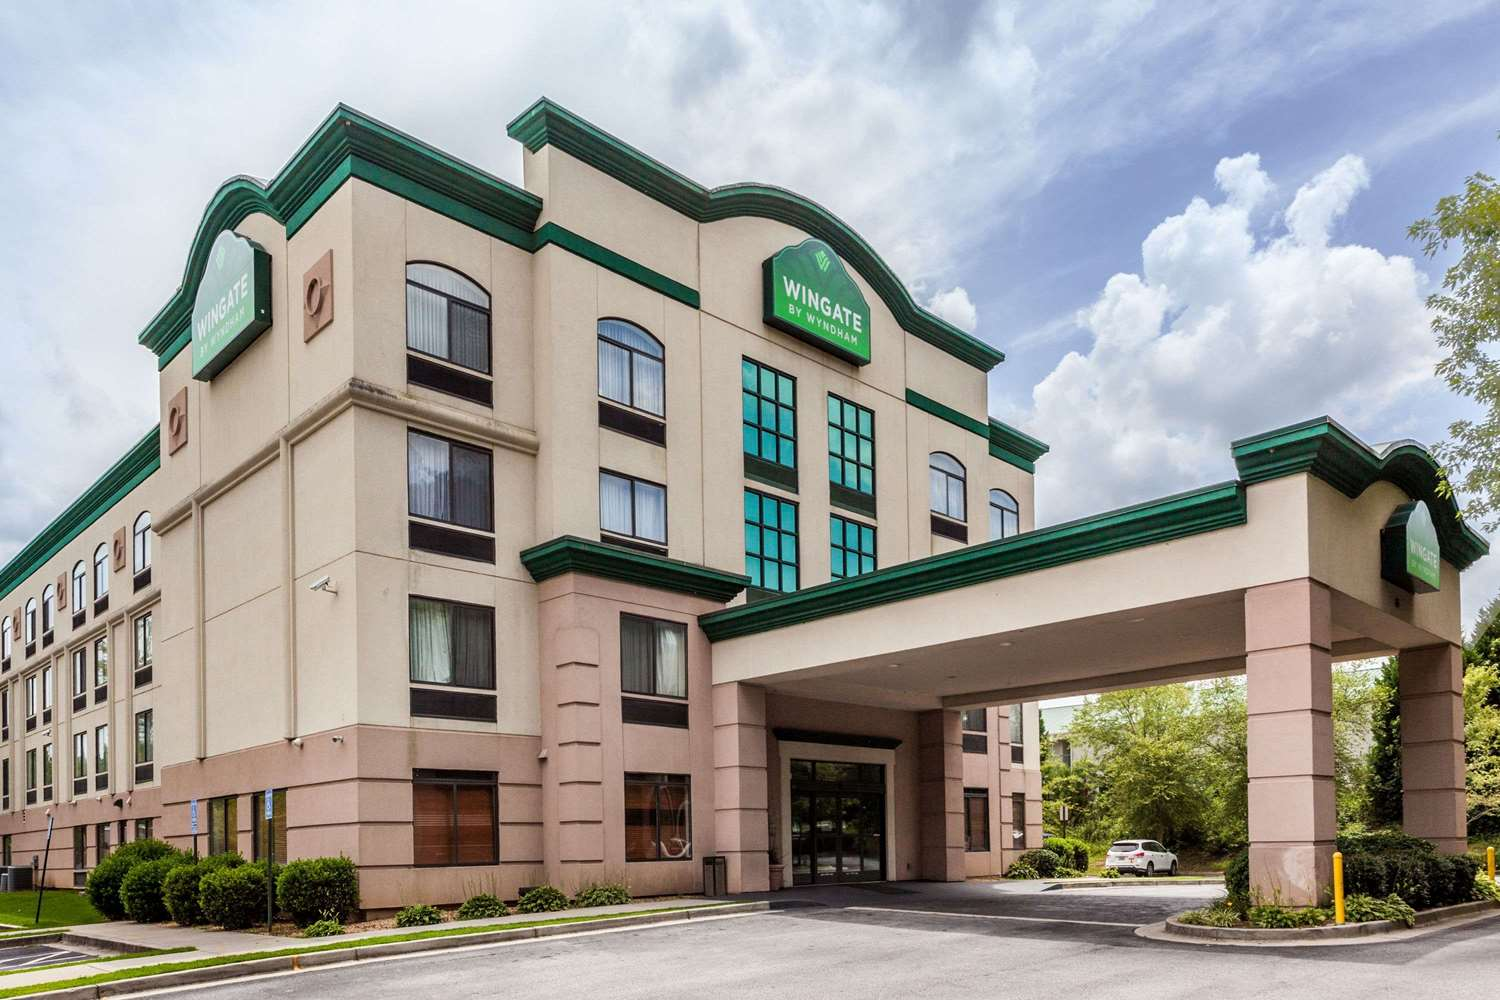 Exterior view - Wingate by Wyndham Hotel Austell